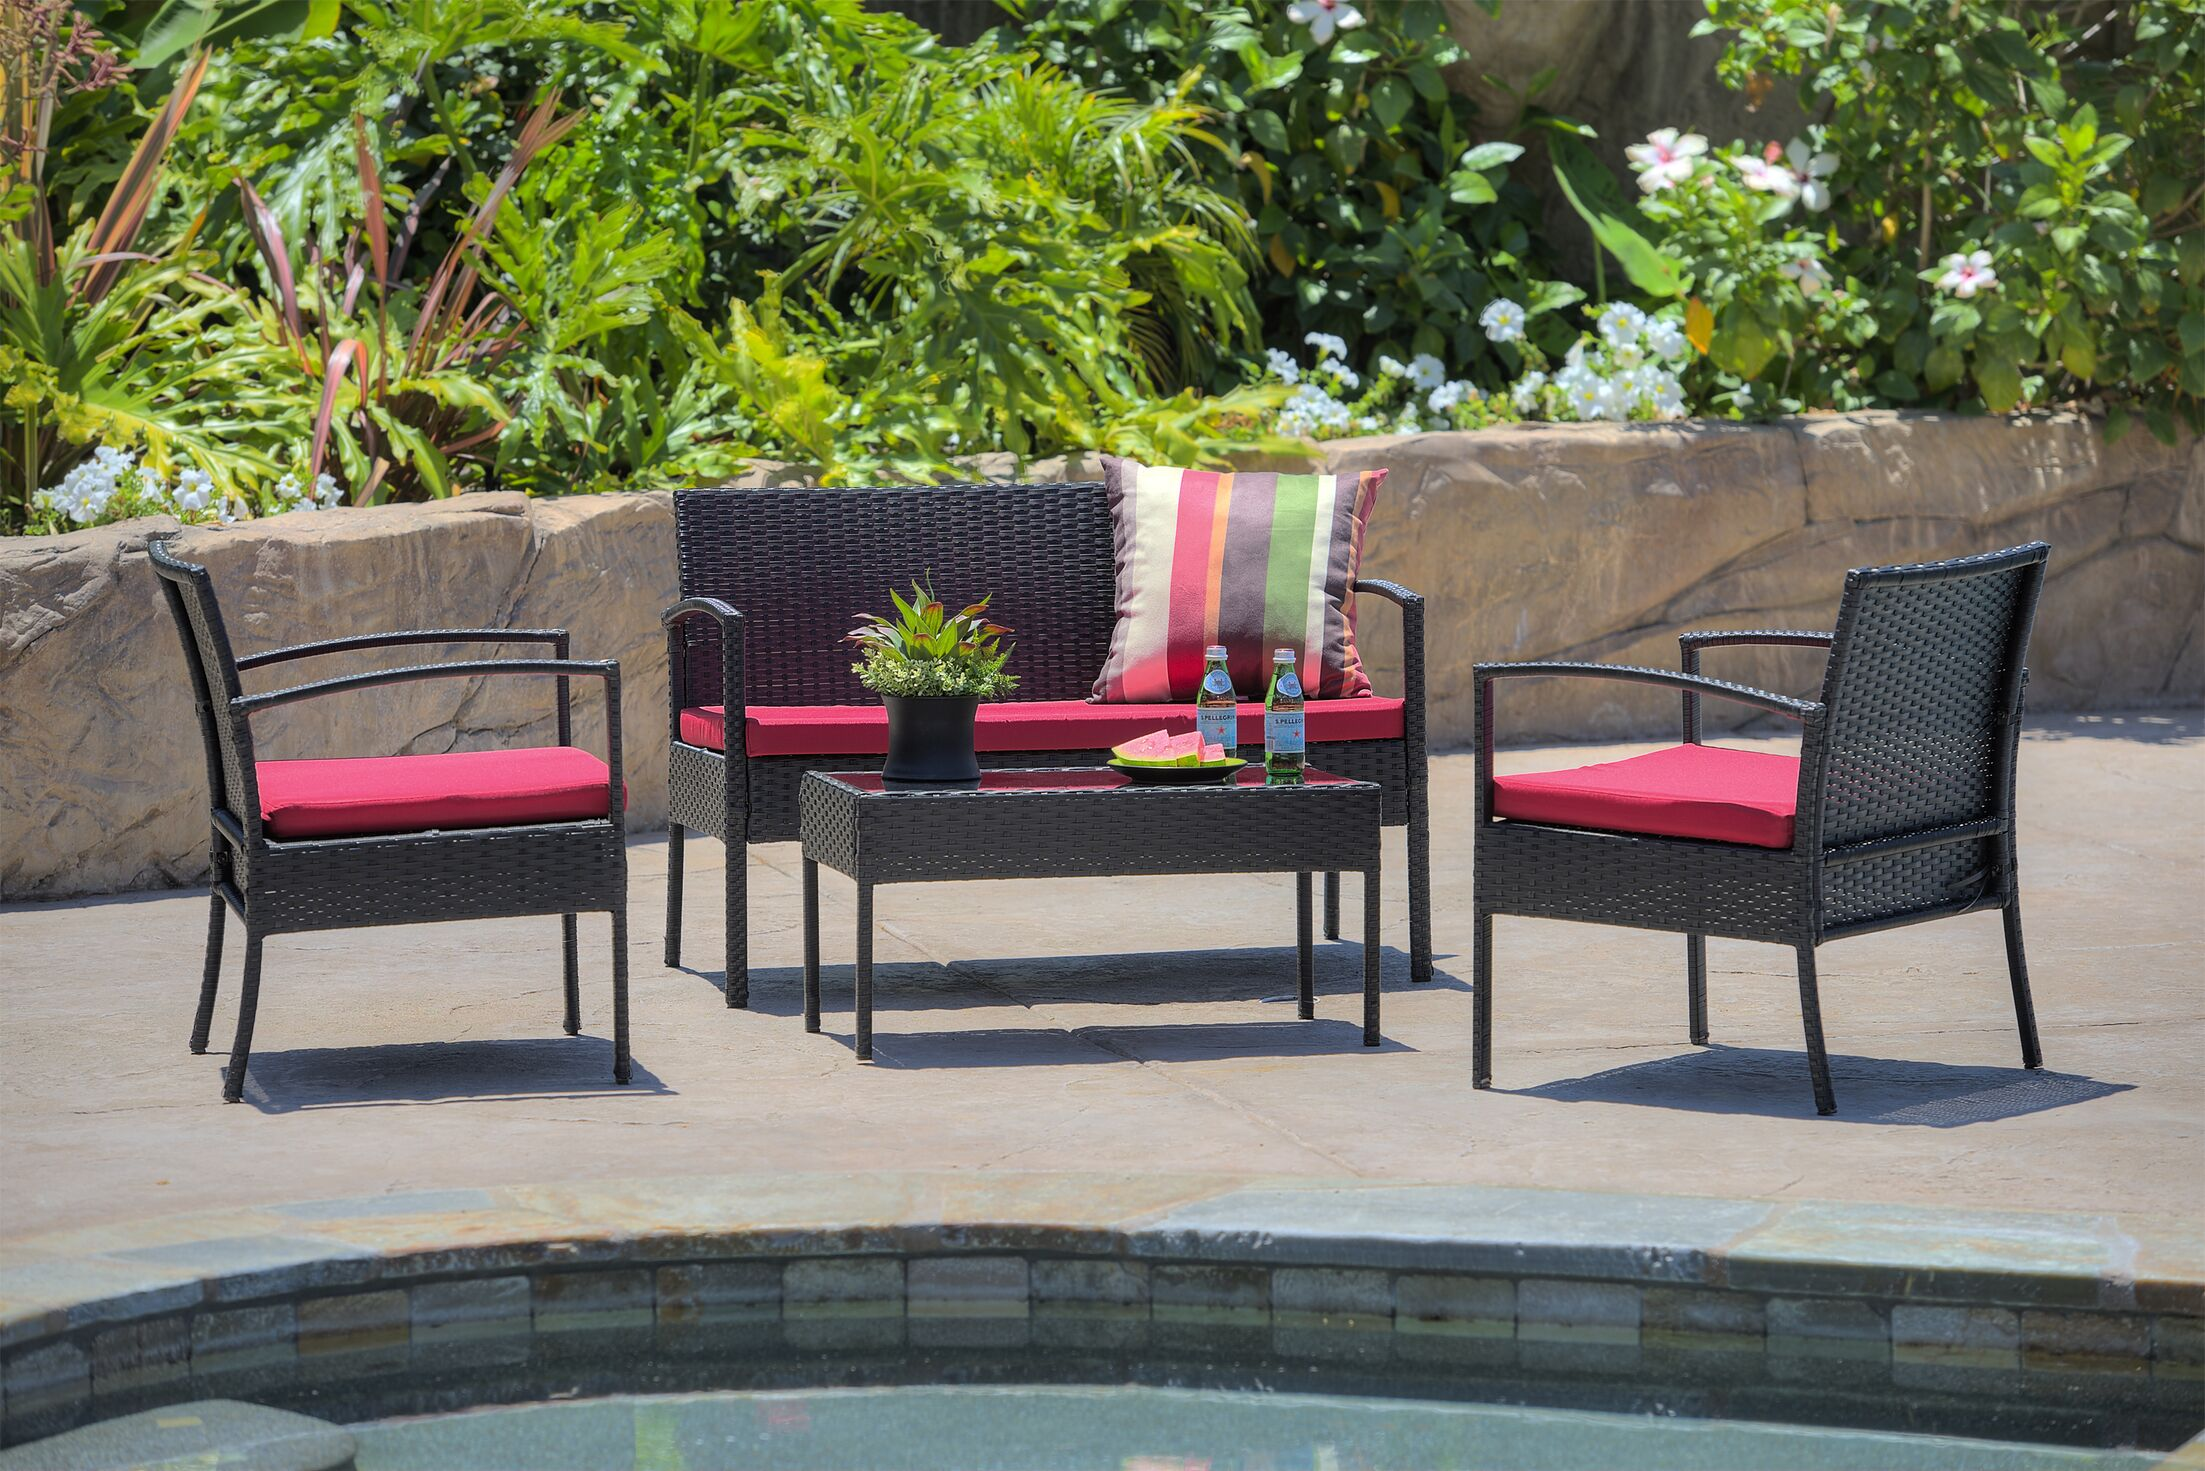 4 Piece Patio Sofa Set with Cushions Frame Color: Black, Cushion Color: Red